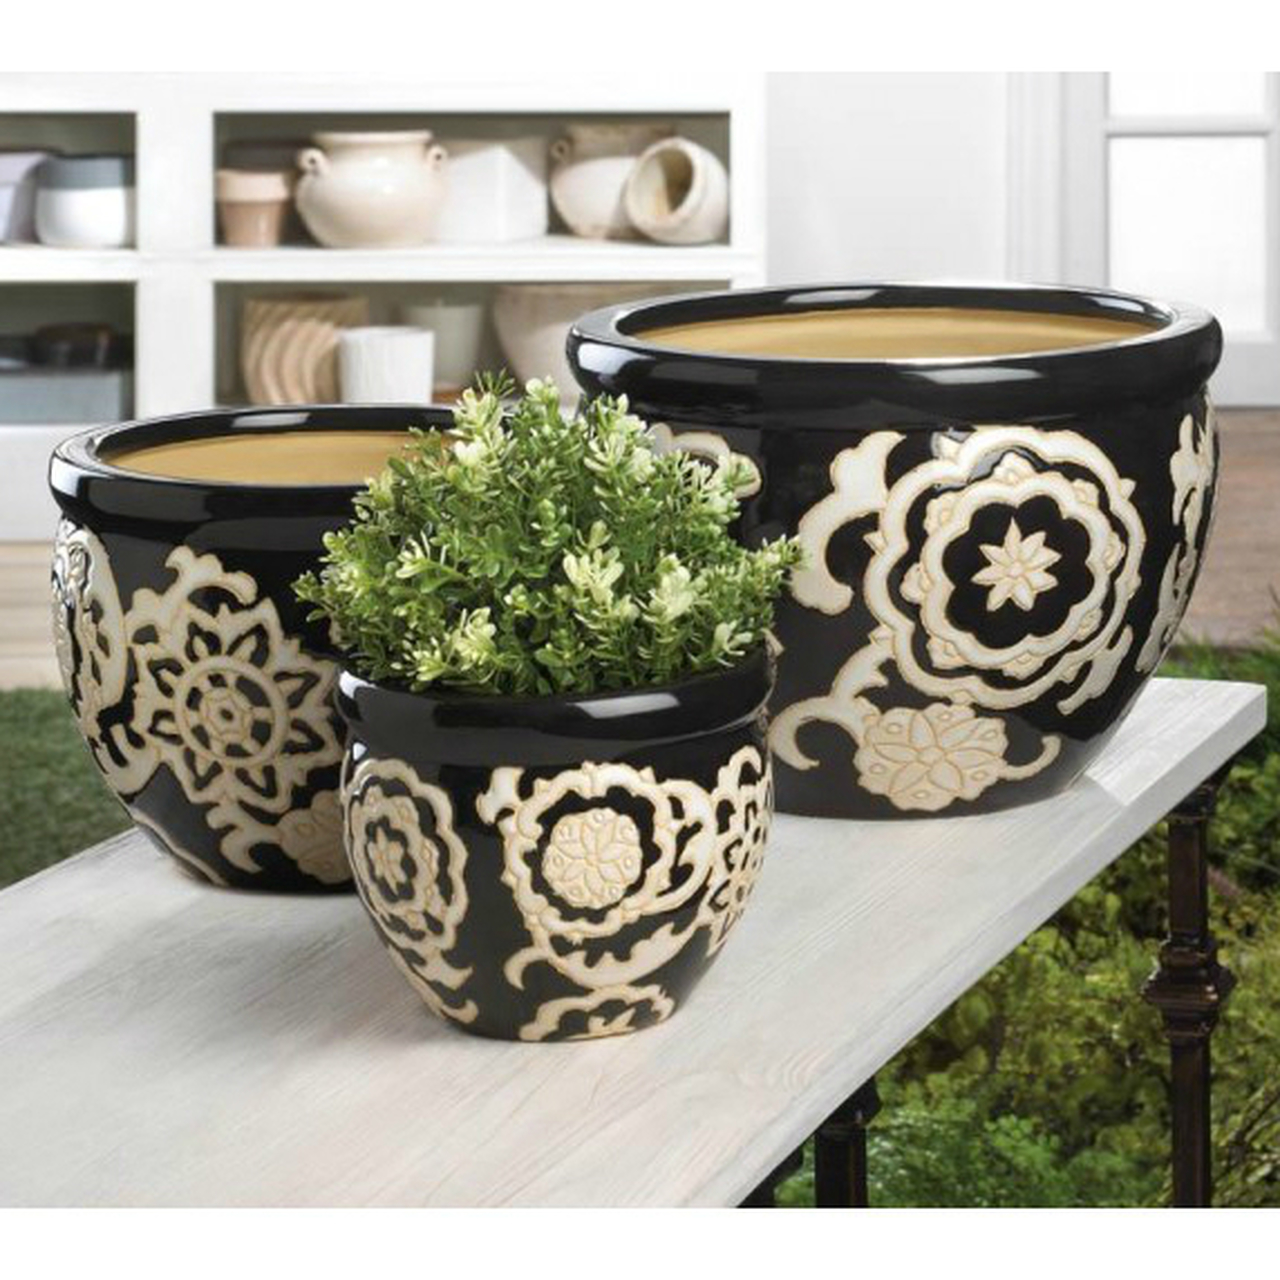 Black Floral Ceramic Planter Set